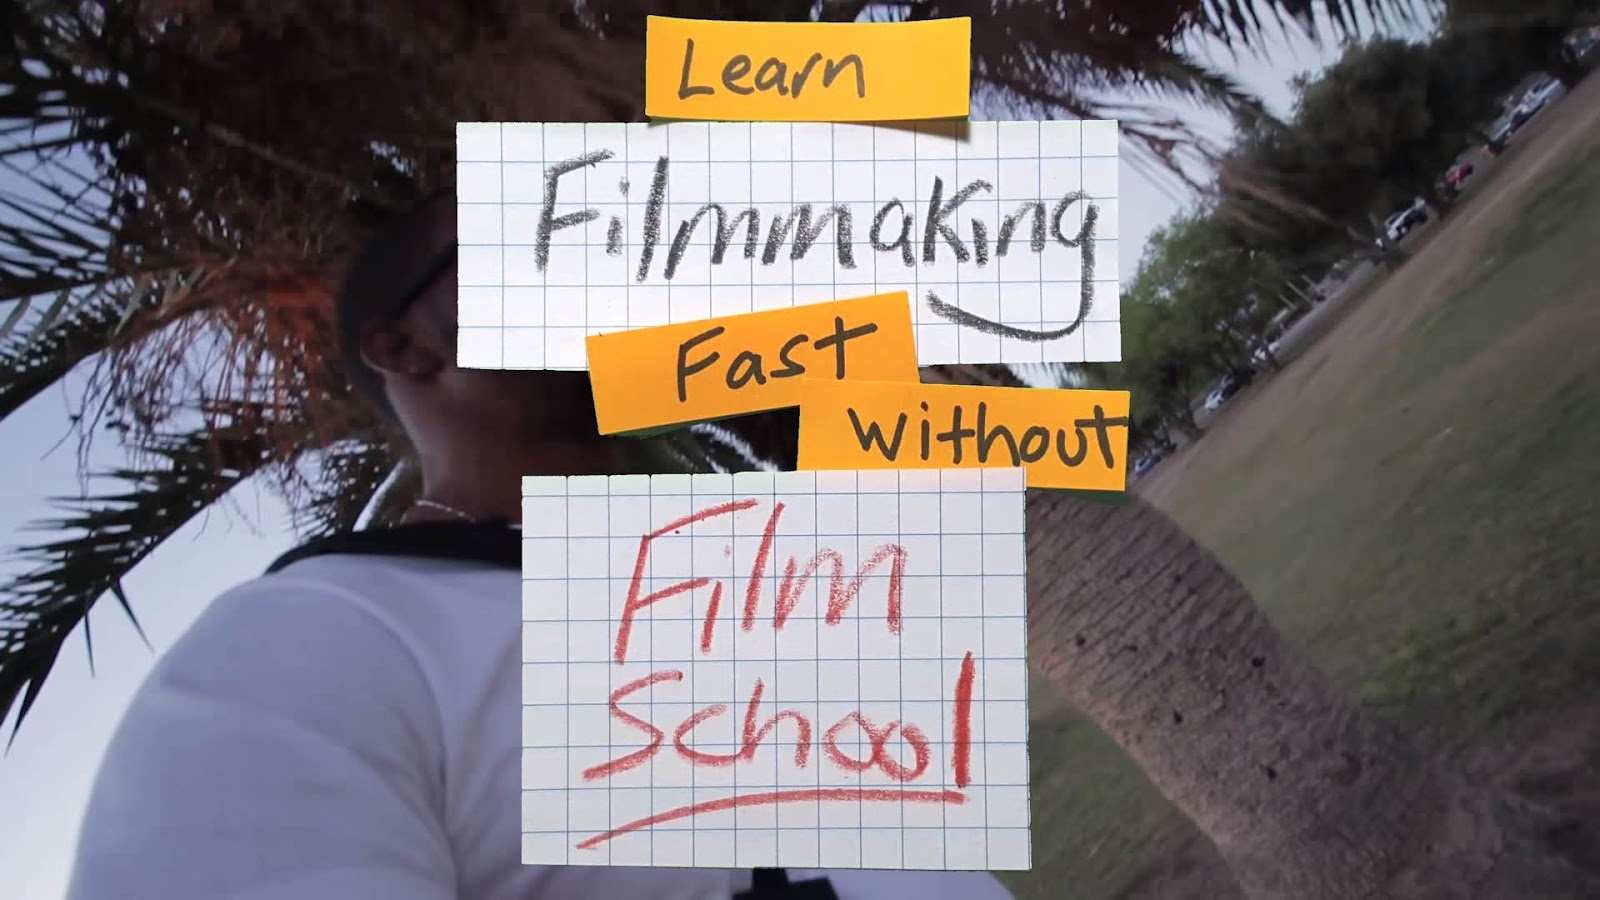 How to Learn Filmmaking FAST! - Without Film School